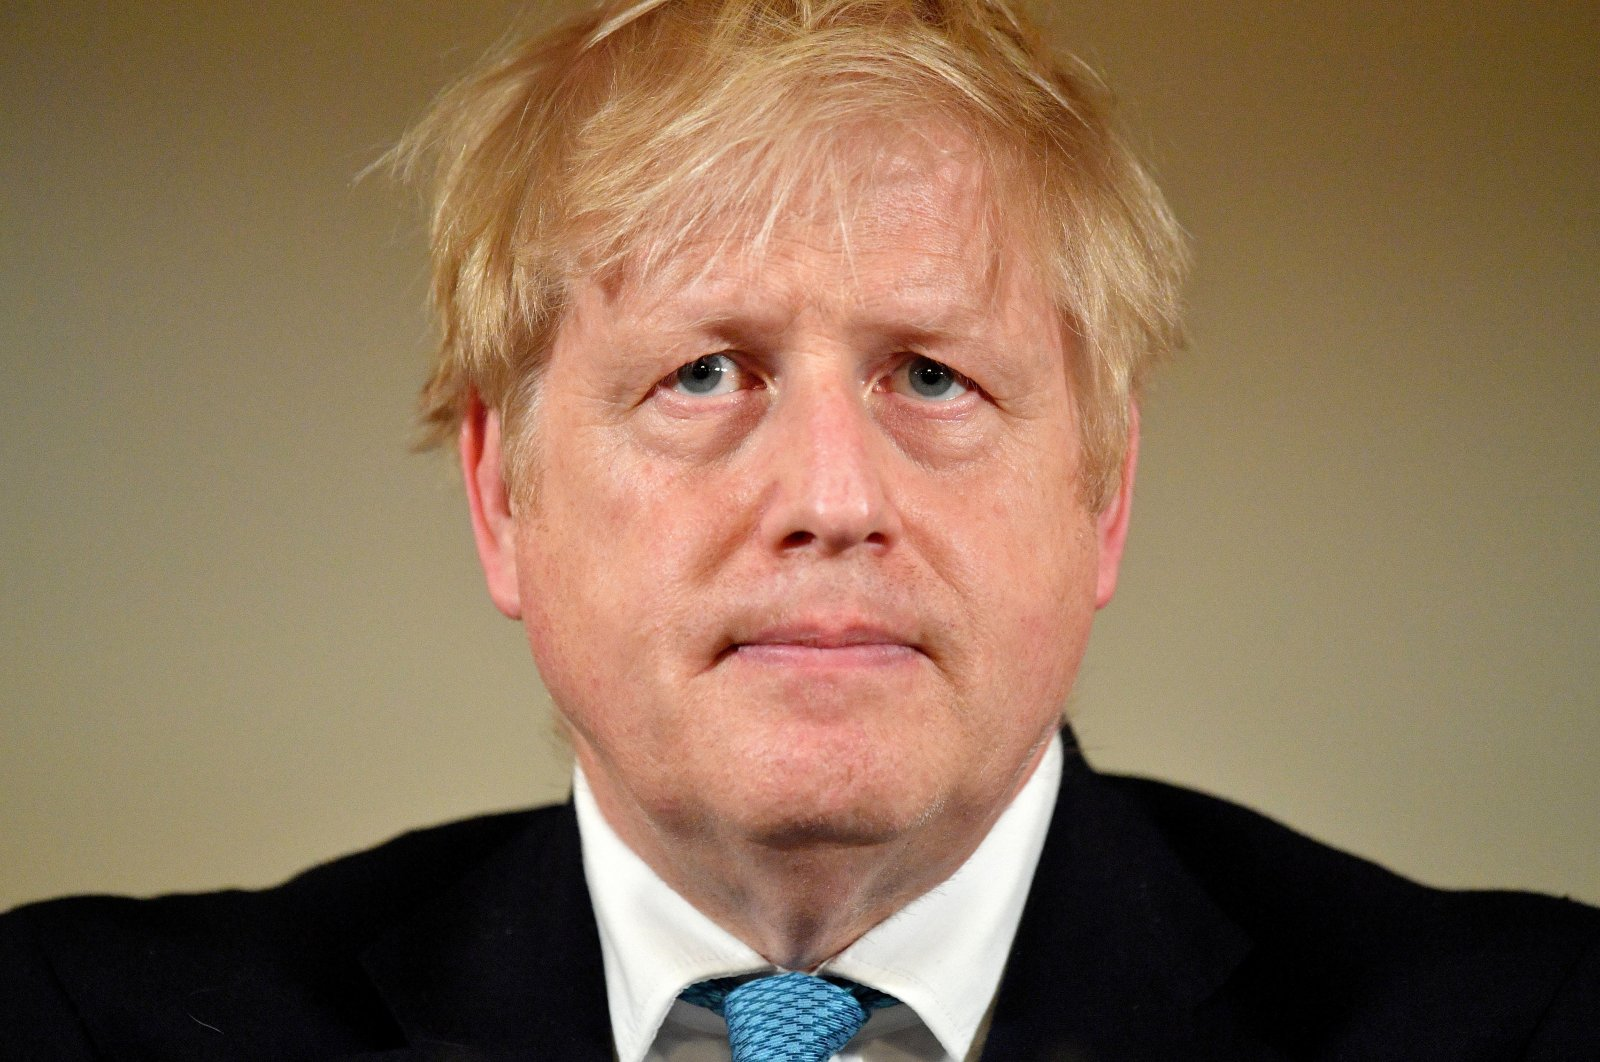 British Prime Minister Boris Johnson looks on during a coronavirus disease (COVID-19) news conference inside 10 Downing Street, London, Britain March 19, 2020. (Reuters Photo)